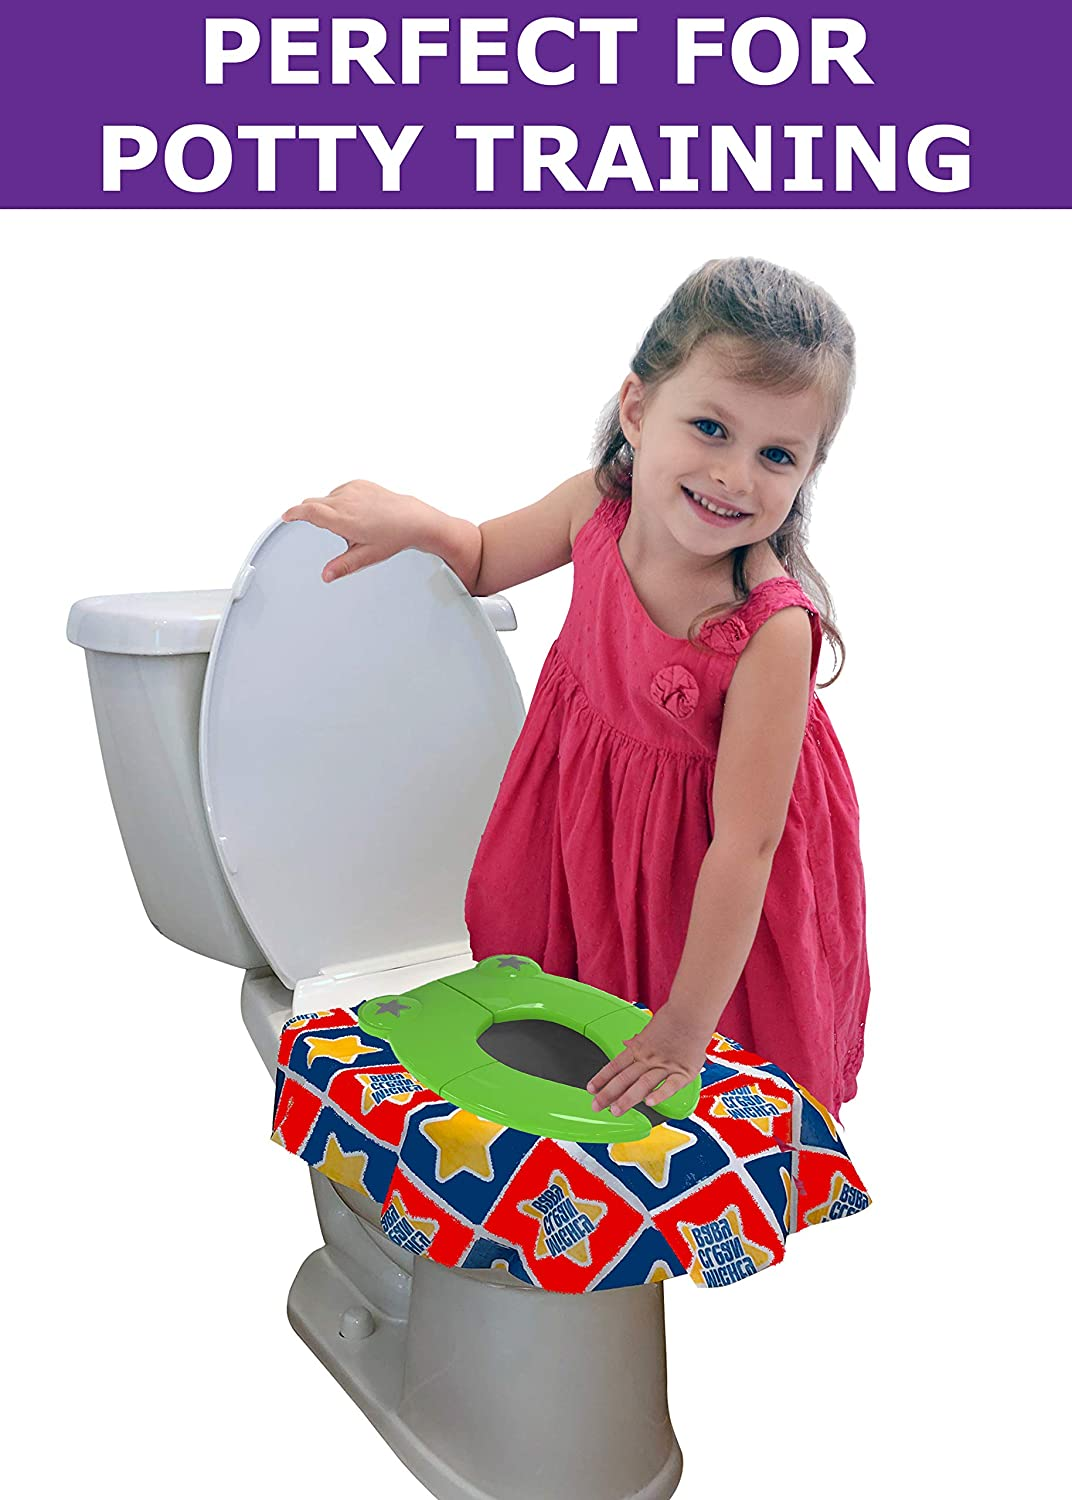 Large Travel Potty Foldable Kids and Toddlers Training Toilet Portable and Reusable Non-Slip Toilet for Boys and Girls with Drawstring Storage Bag and Garbage Bag for Outdoor Car Indoor Blue